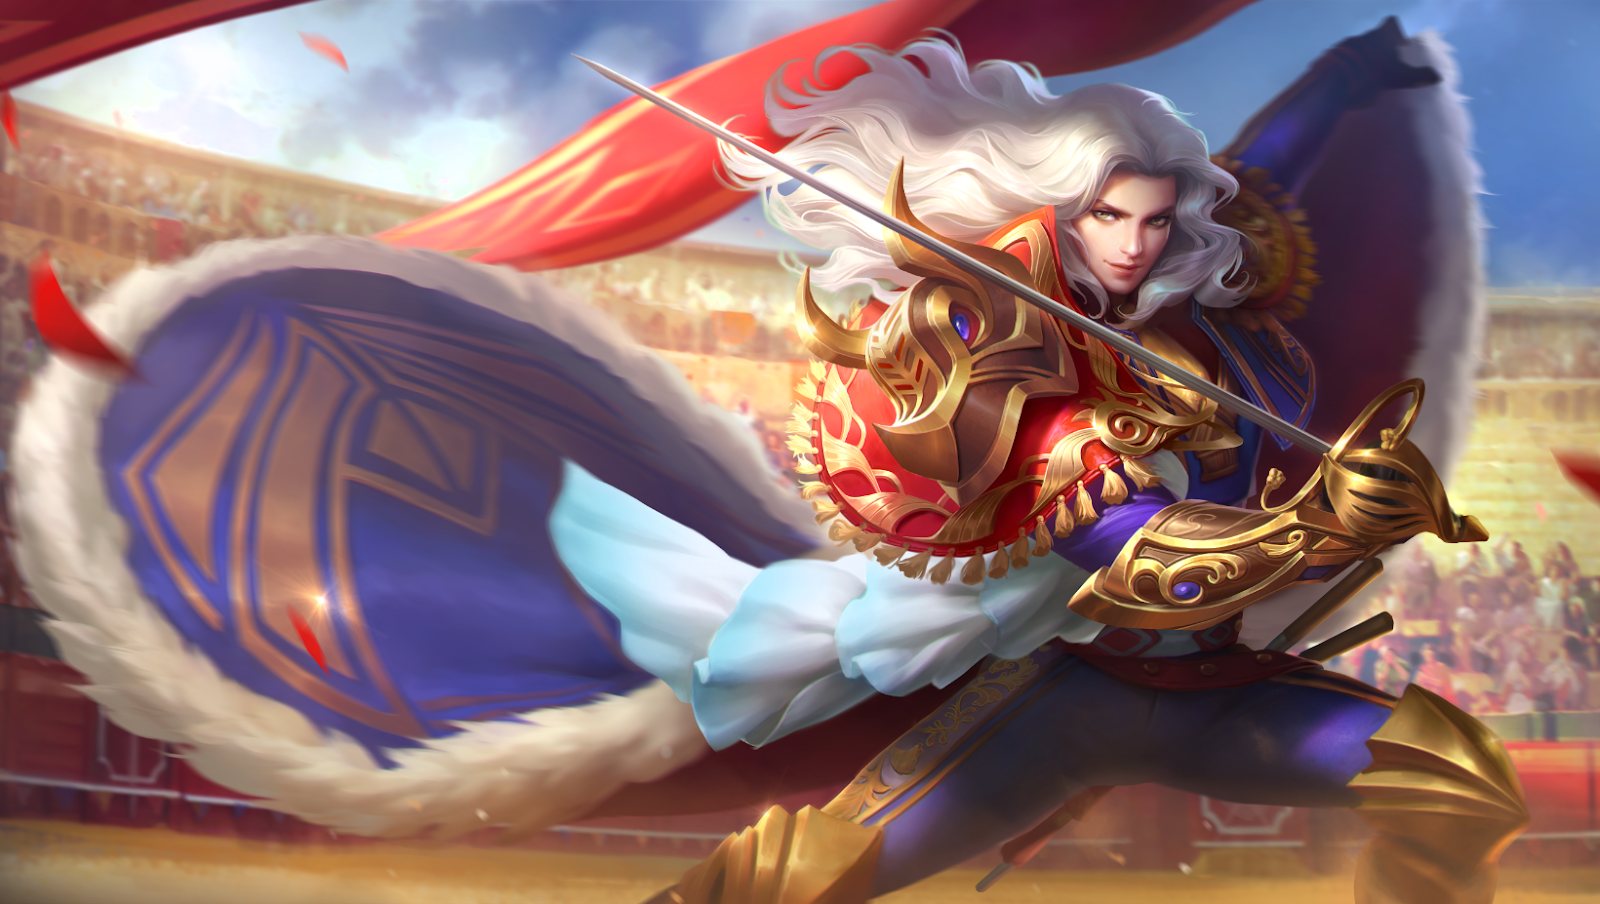 how to get rare skin fragments in mobile legends